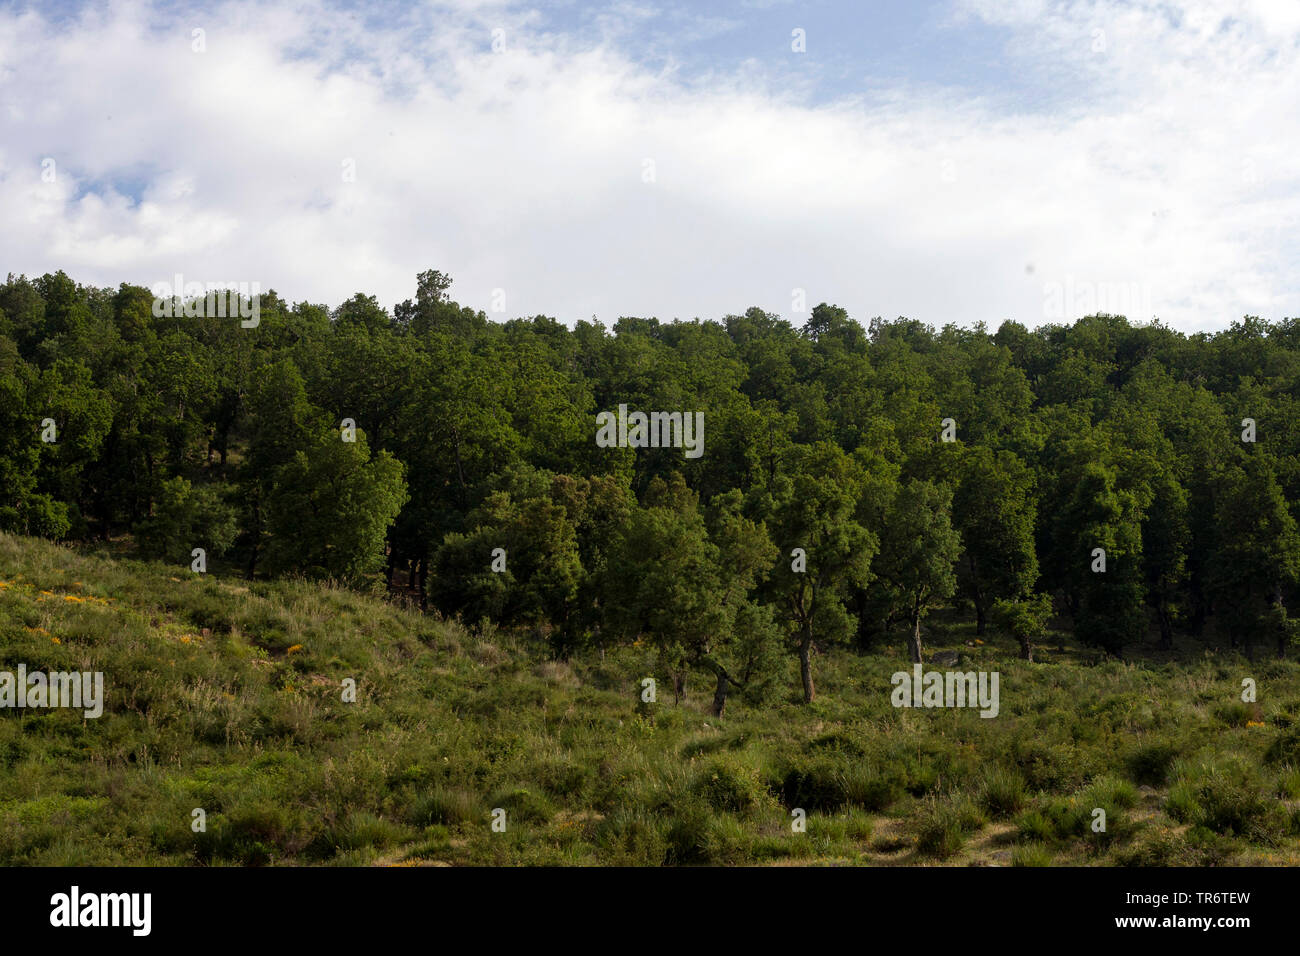 Naaldbos, Pine Forest, Algerien, Petite Kabylie   Naaldbos, Pine Forest, Algeria, Petite Kabylie   BLWS490387.jpg [ (c) blickwinkel/AGAMI/D. Monticell - Stock Image